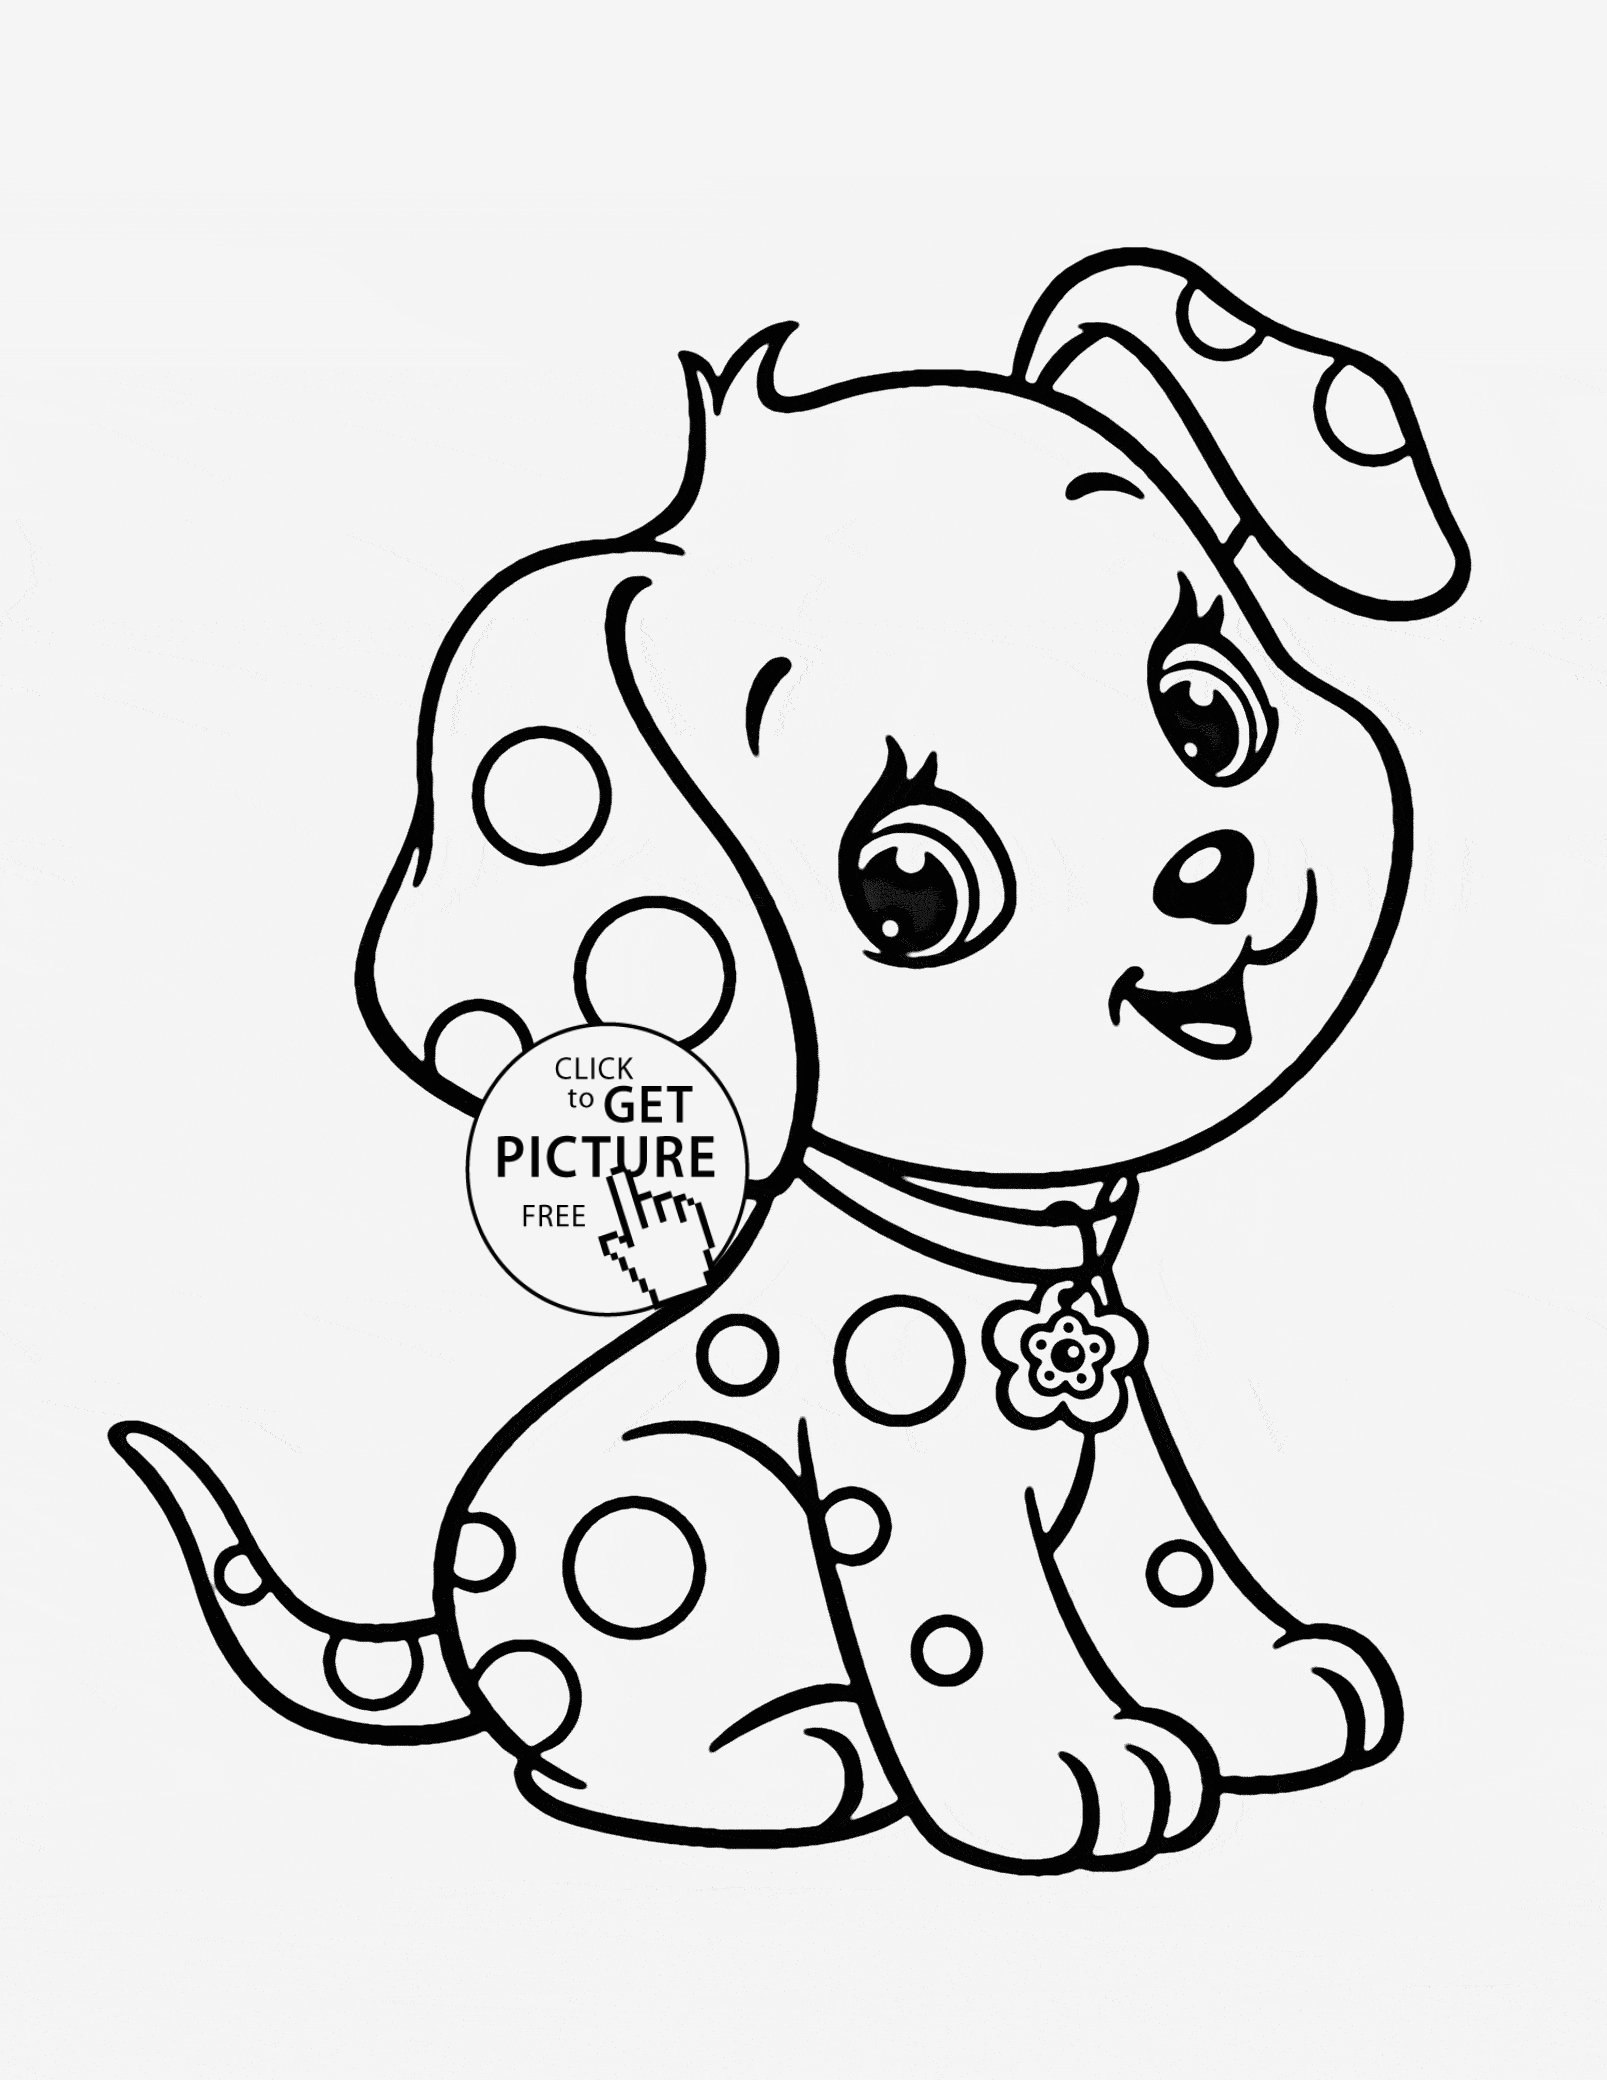 print coloring pages Collection-Free Animal Coloring Pages Free Print Cool Coloring Page Unique Witch Coloring Pages New Crayola Pages 0d 17-t